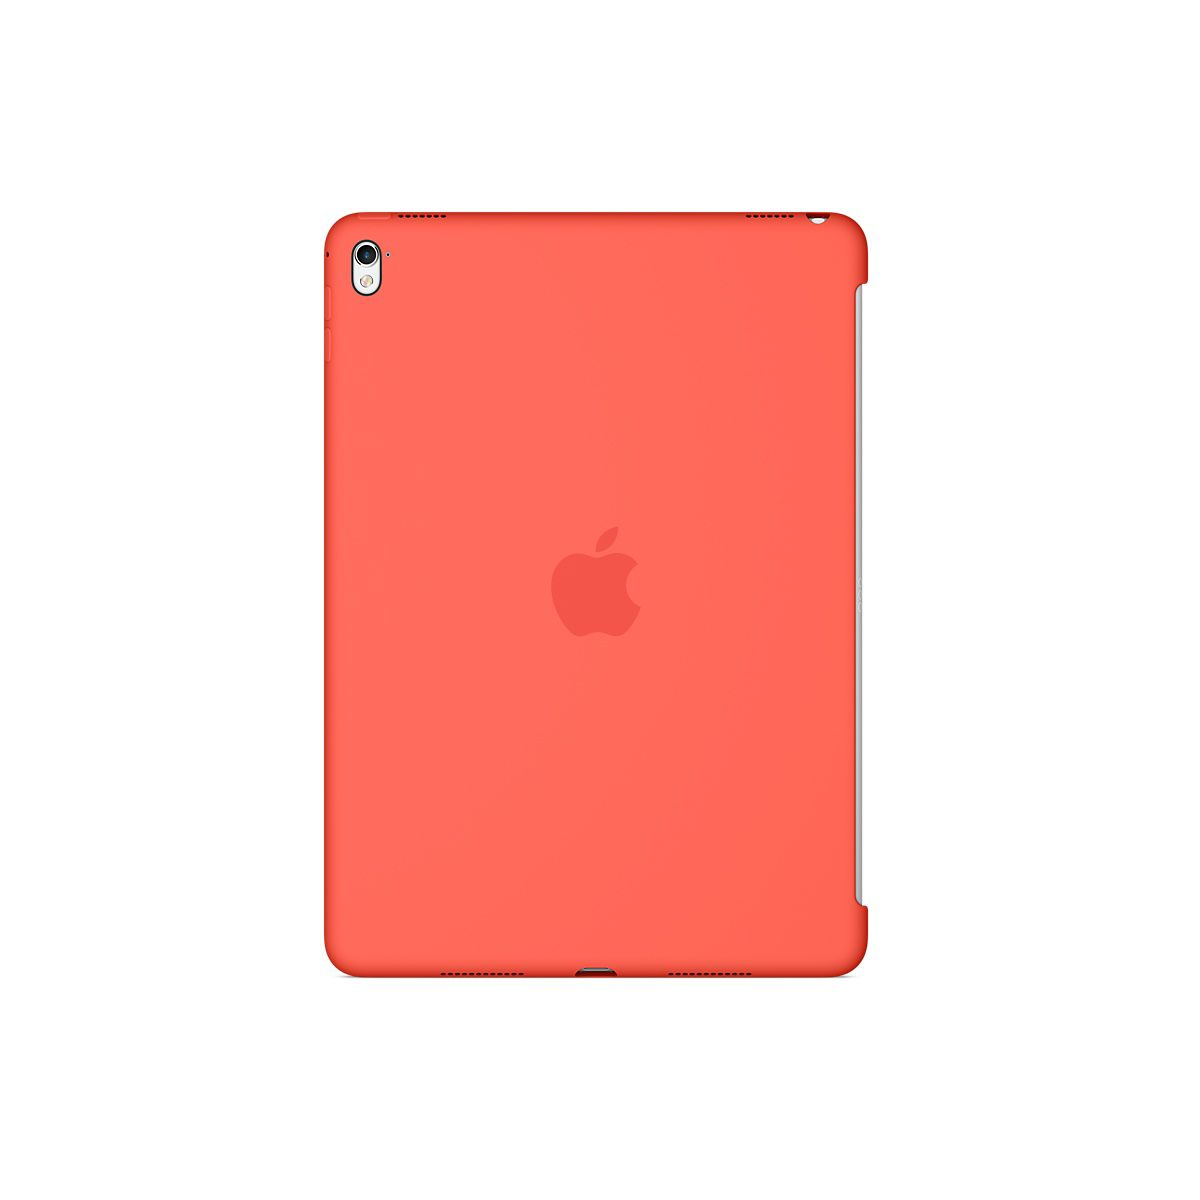 Coque APPLE silicone abricot iPad Pro 9,7'' (photo)